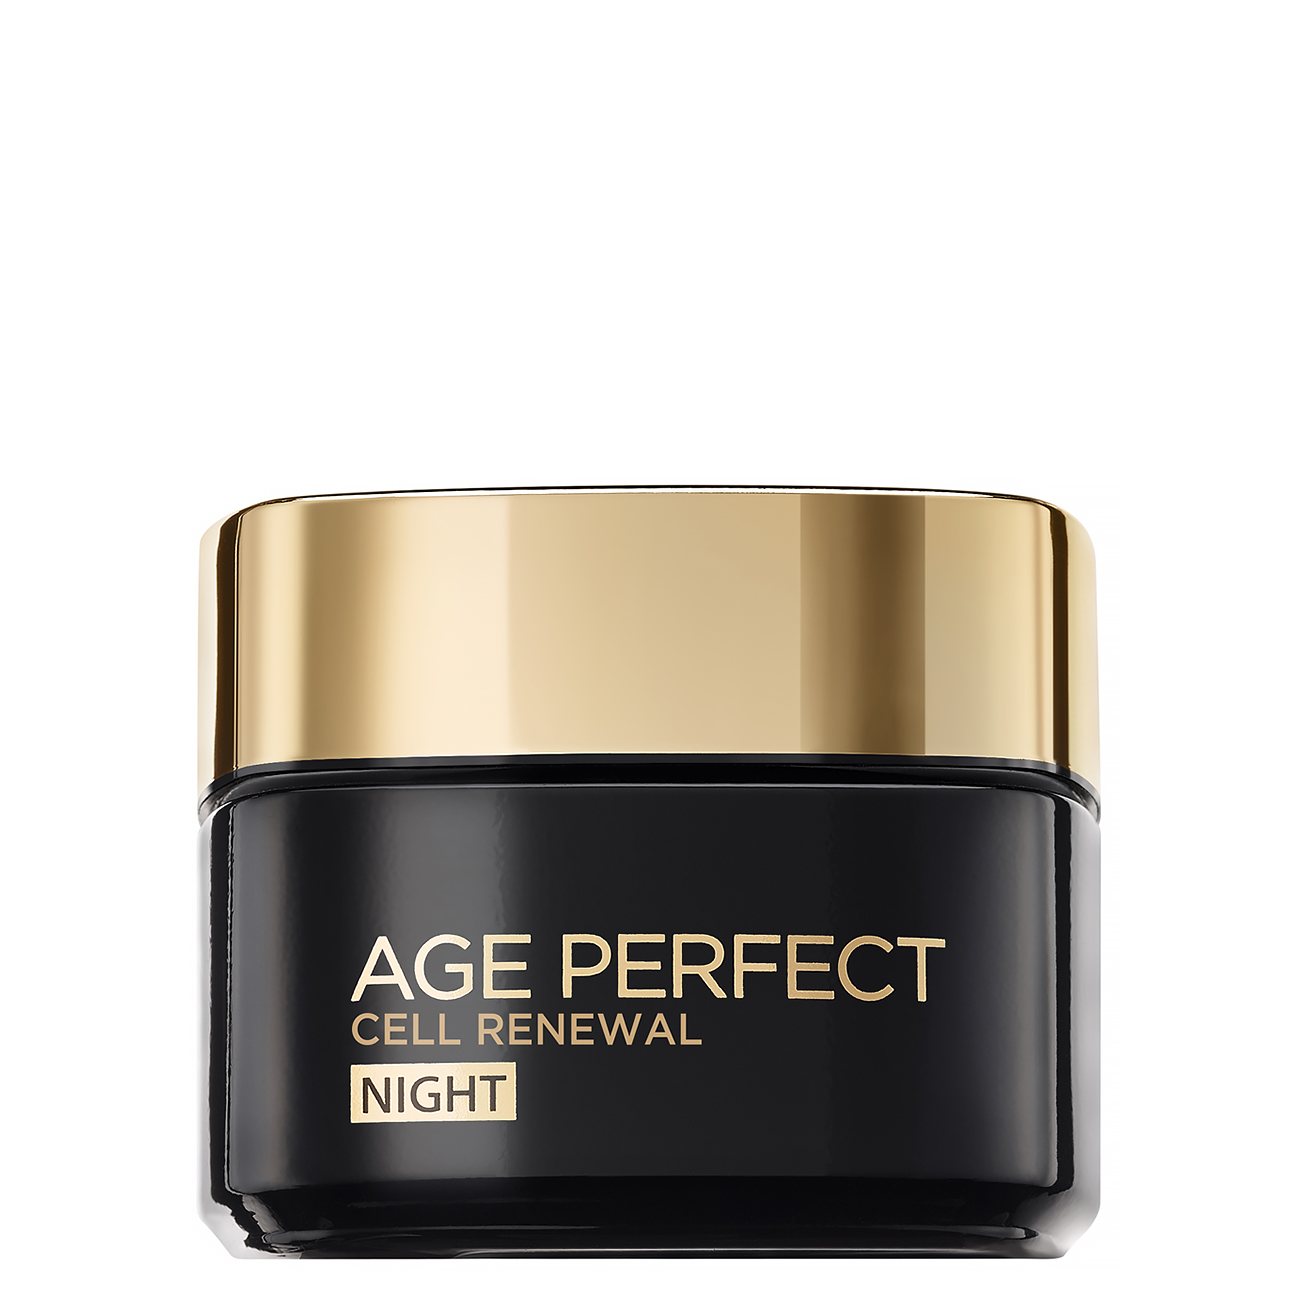 AGE PERFECT CELL RENEW CELL RENEW DUO SET 100ml imagine produs